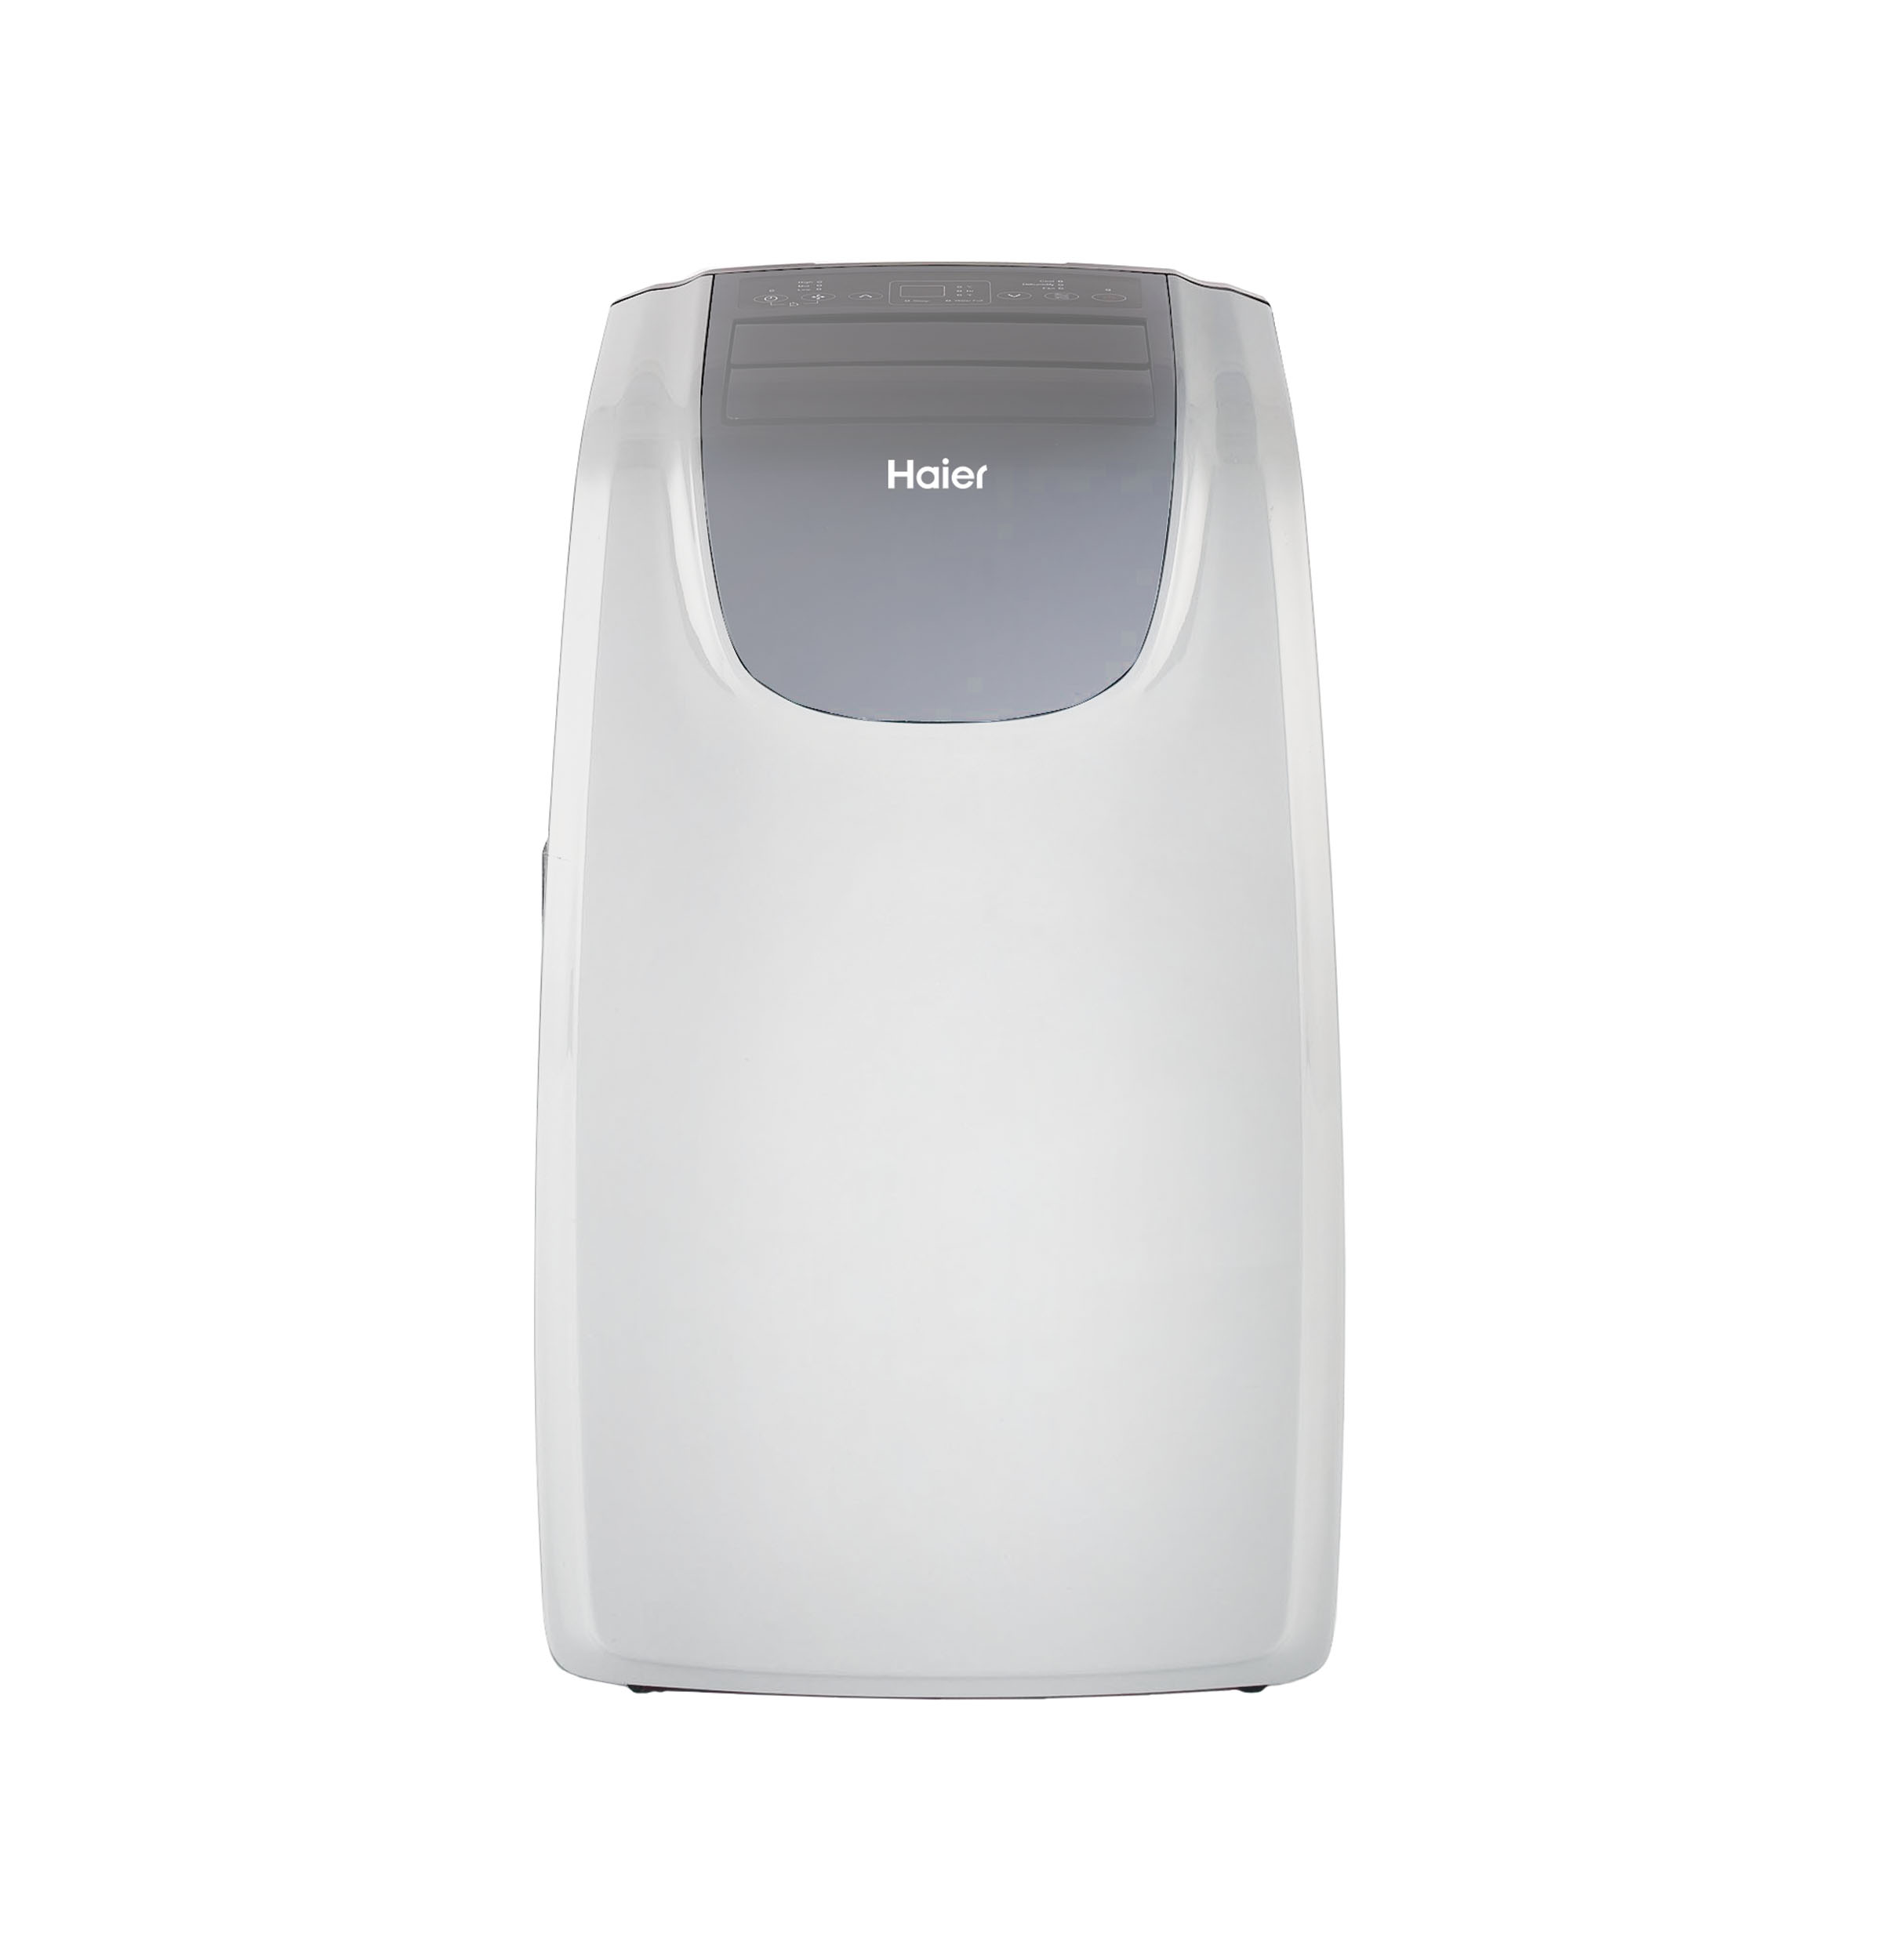 Haier 10000 Btu Portable Air Conditioner QPCD10AXLW Walmartcom